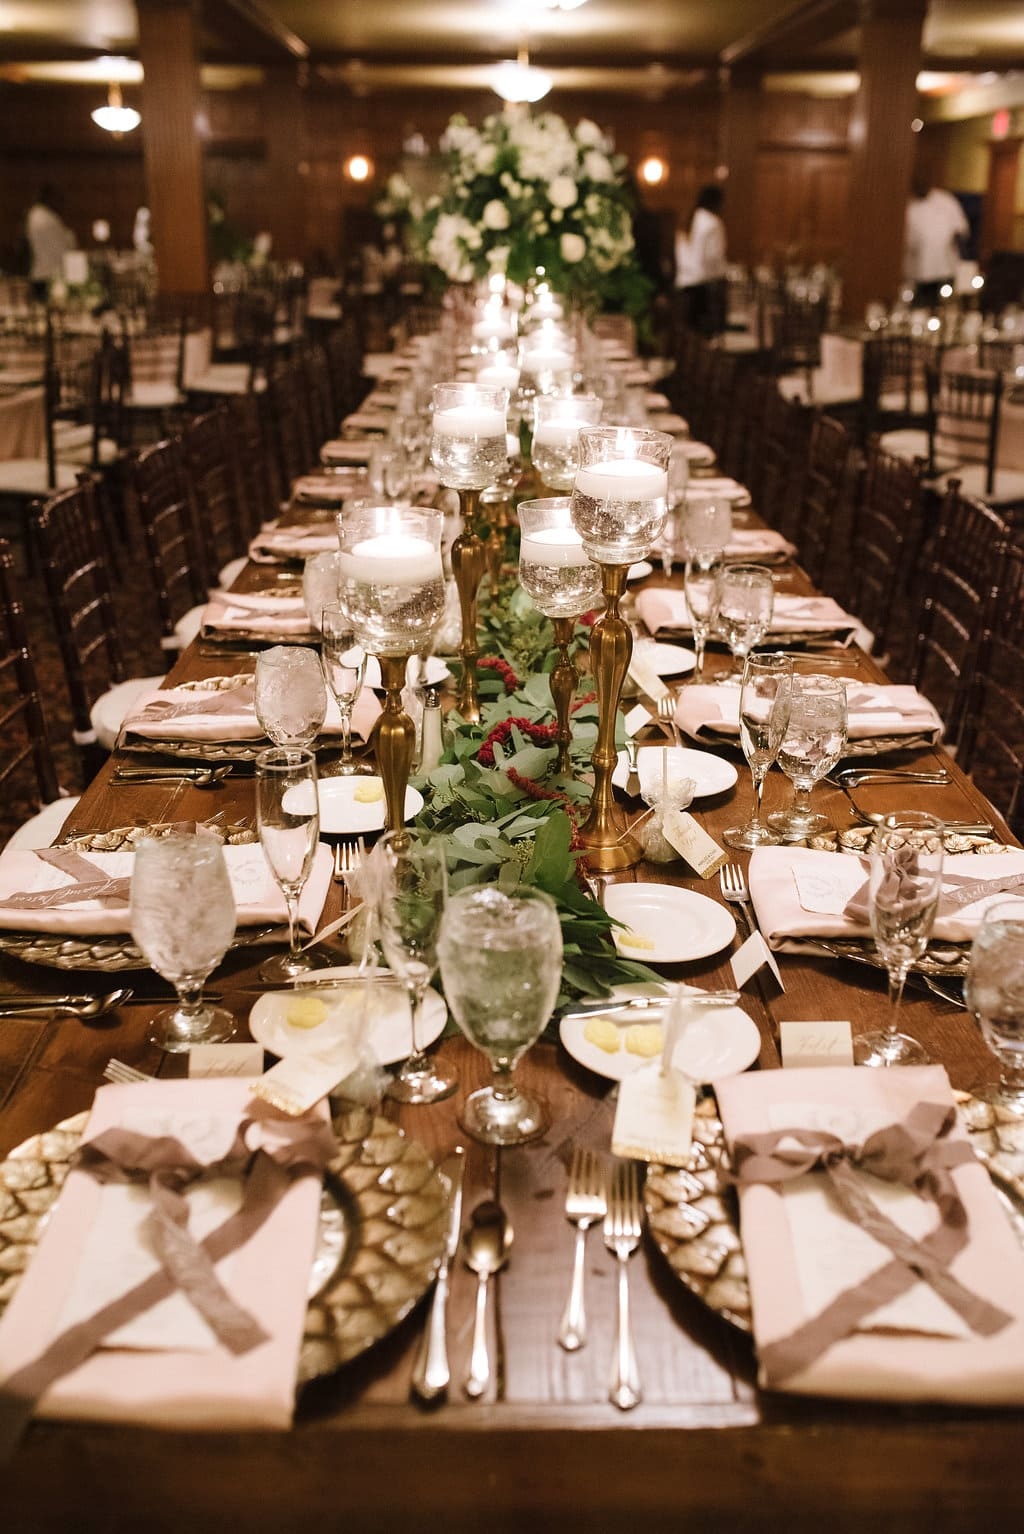 New Years Eve-New Years Eve Wedding-Gem Theater-Detroit wedding- luxury wedding-wedding details-Michigan wedding-Detroit Wedding- Detroit wedding planner-Michigan wedding planner-wedding details - menu cards- wedding details-elegant wedding-farmhouse table design